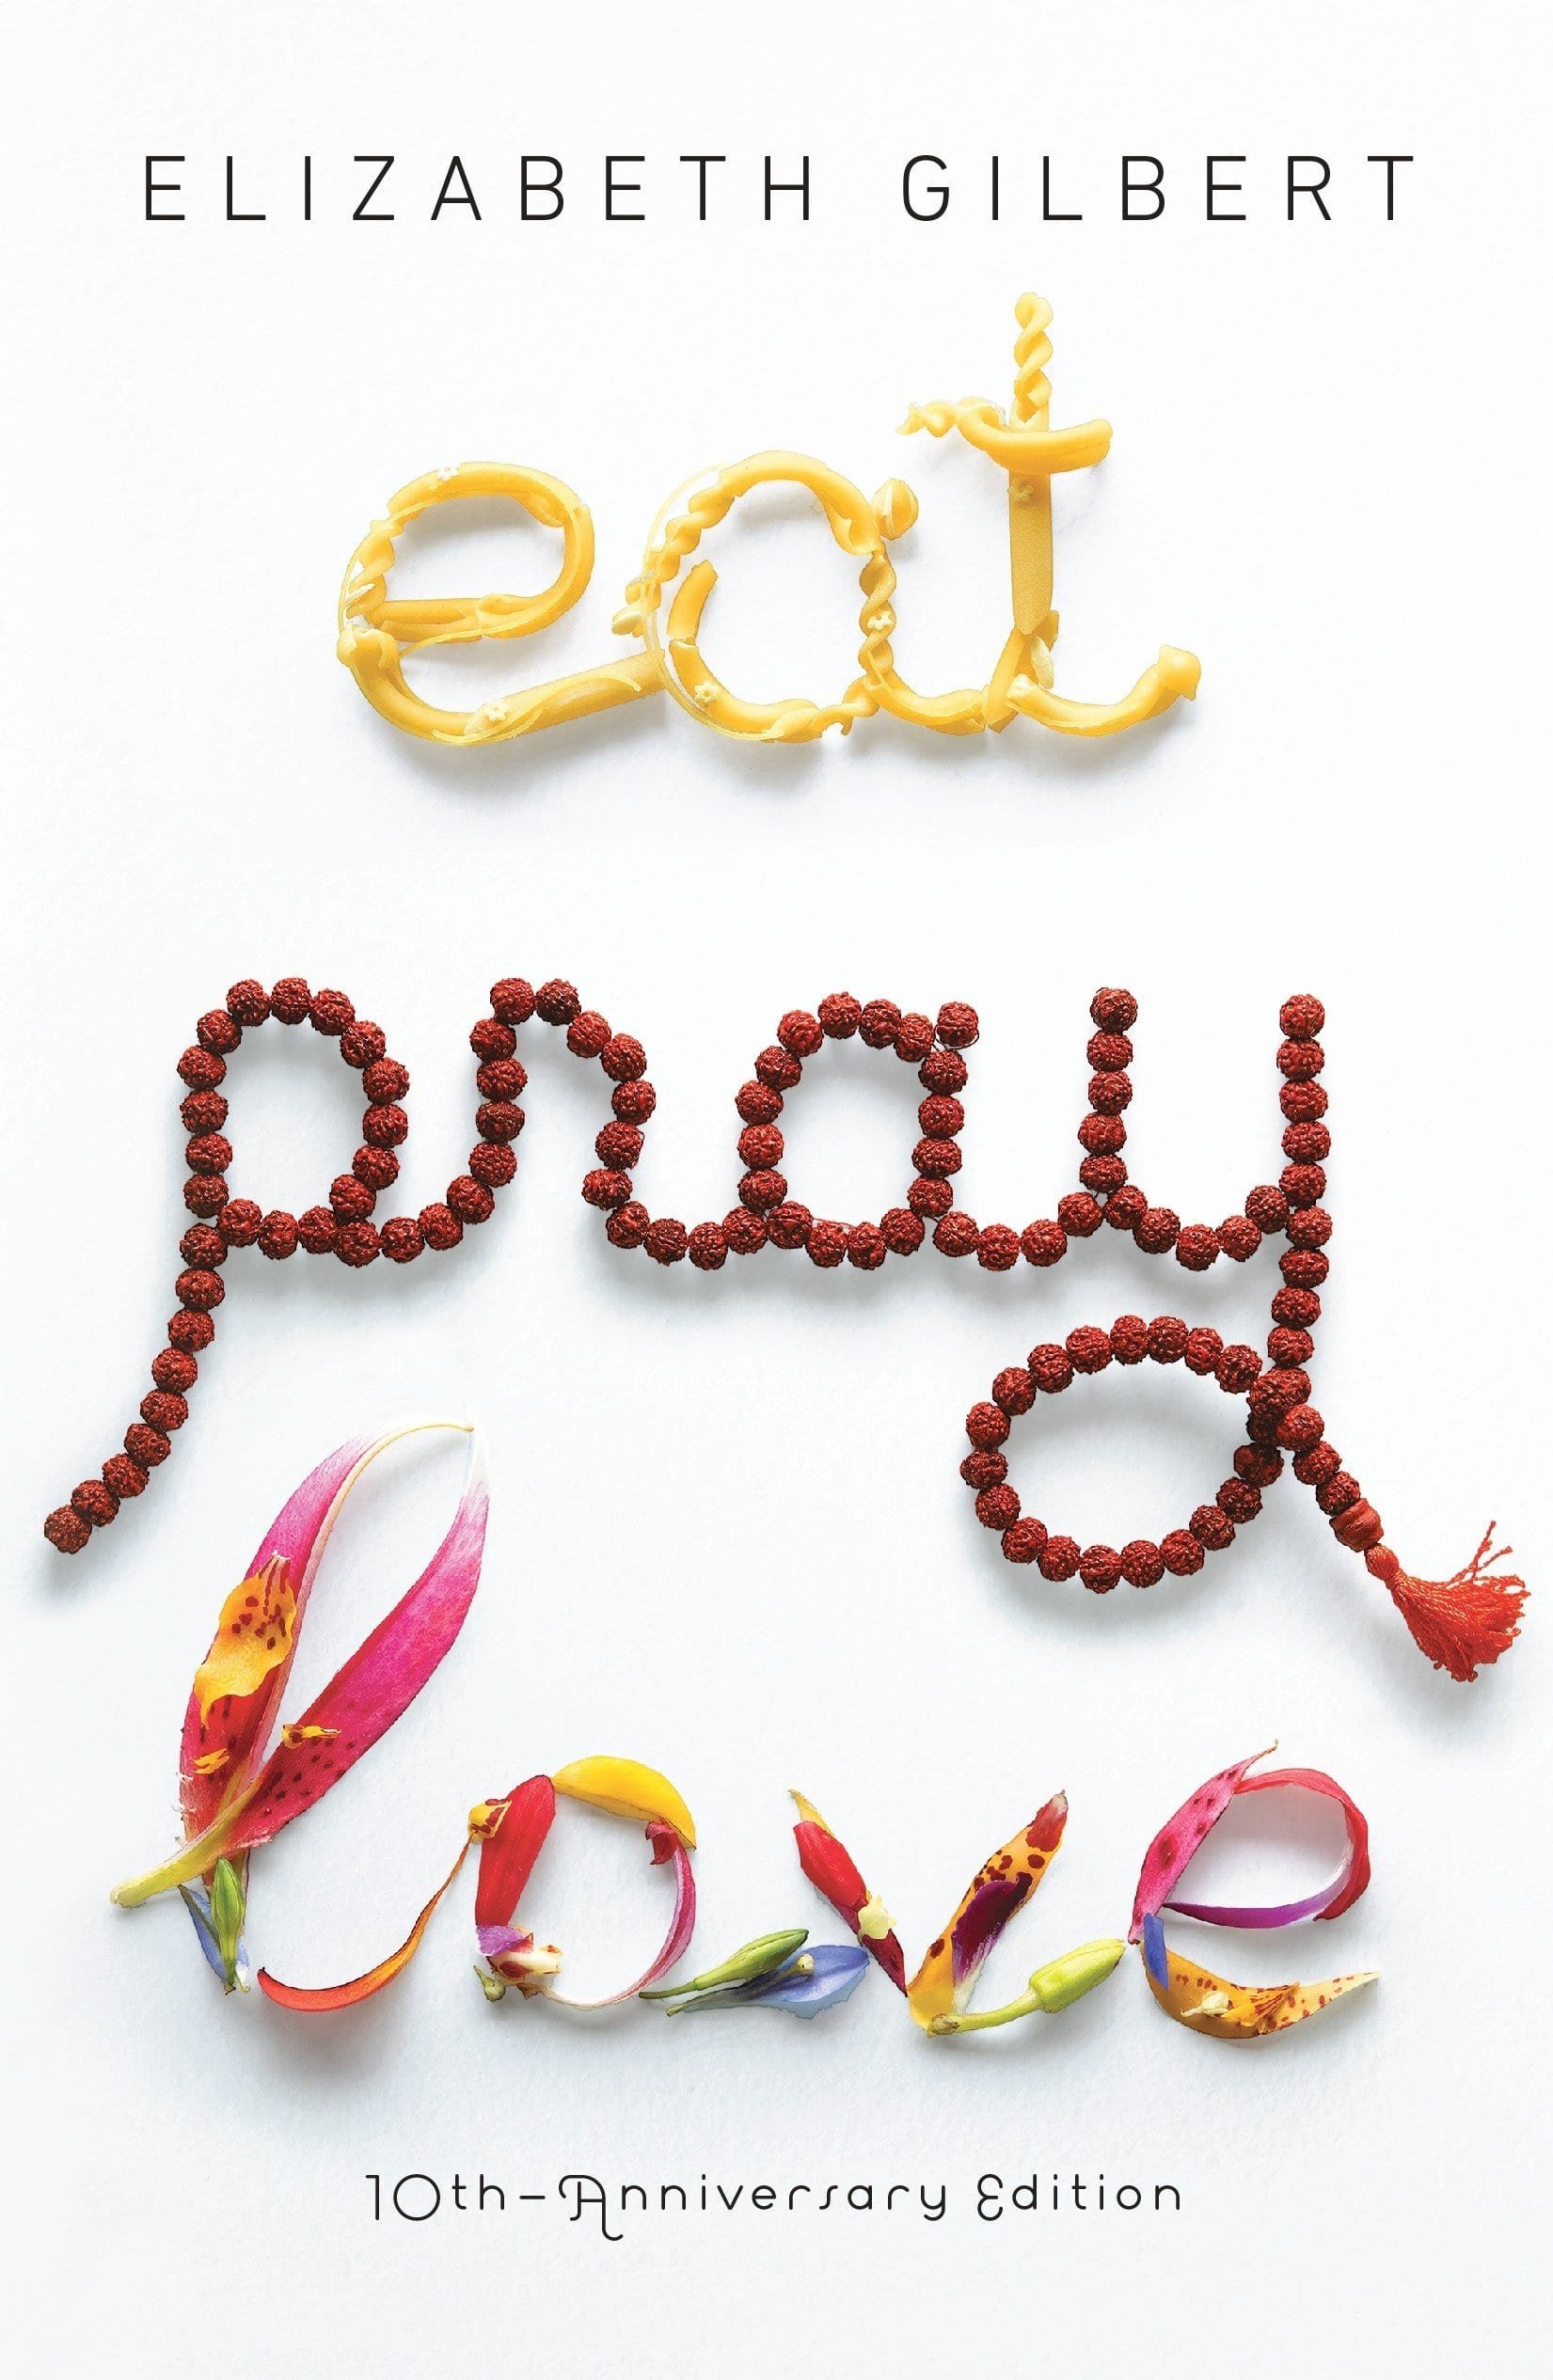 gustobeats book club rome and italy related books eat pray love by Elizabeth Gilbert for female self development and discovery